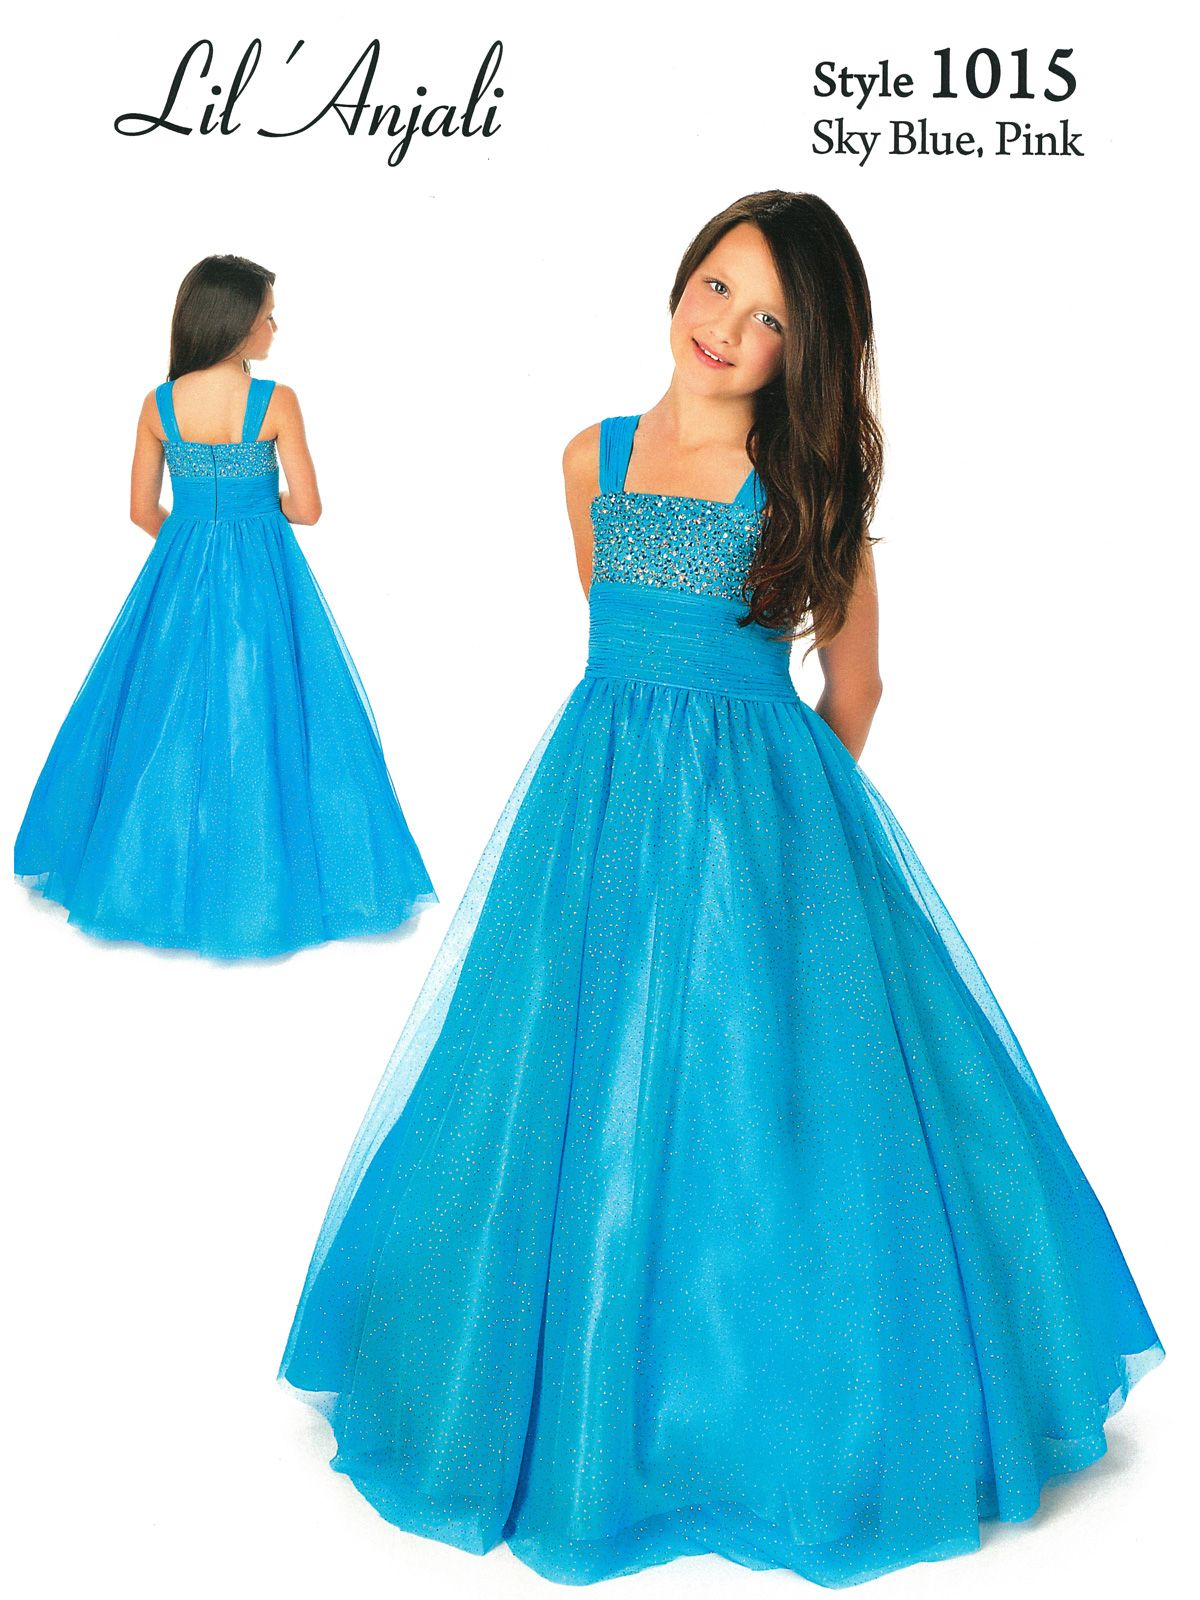 Girls Formal Dresses Clearance | ... Girls Pageant Dress Style 1015 ...